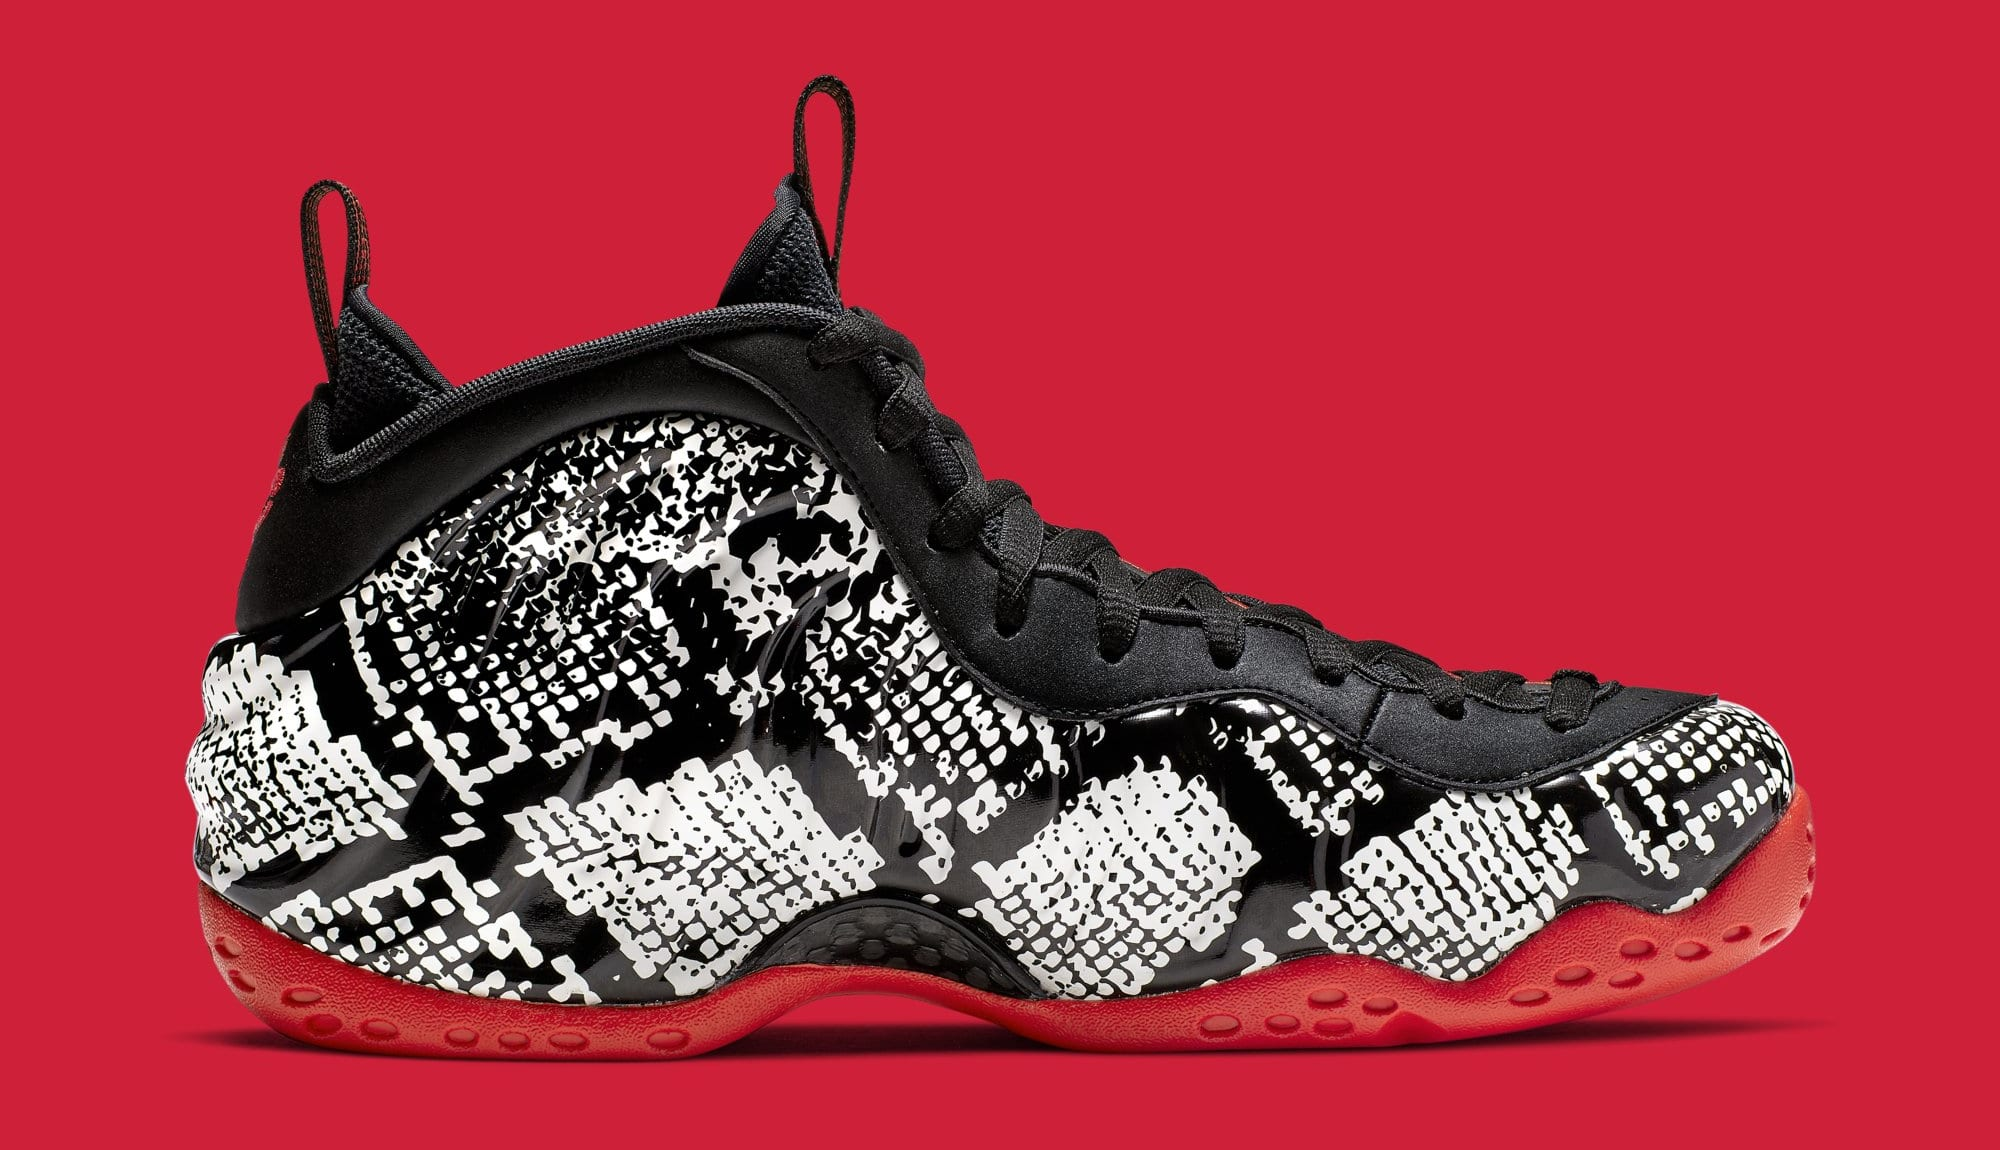 Nike Air Foamposite One 'Snakeskin' 314996-101 (Medial)